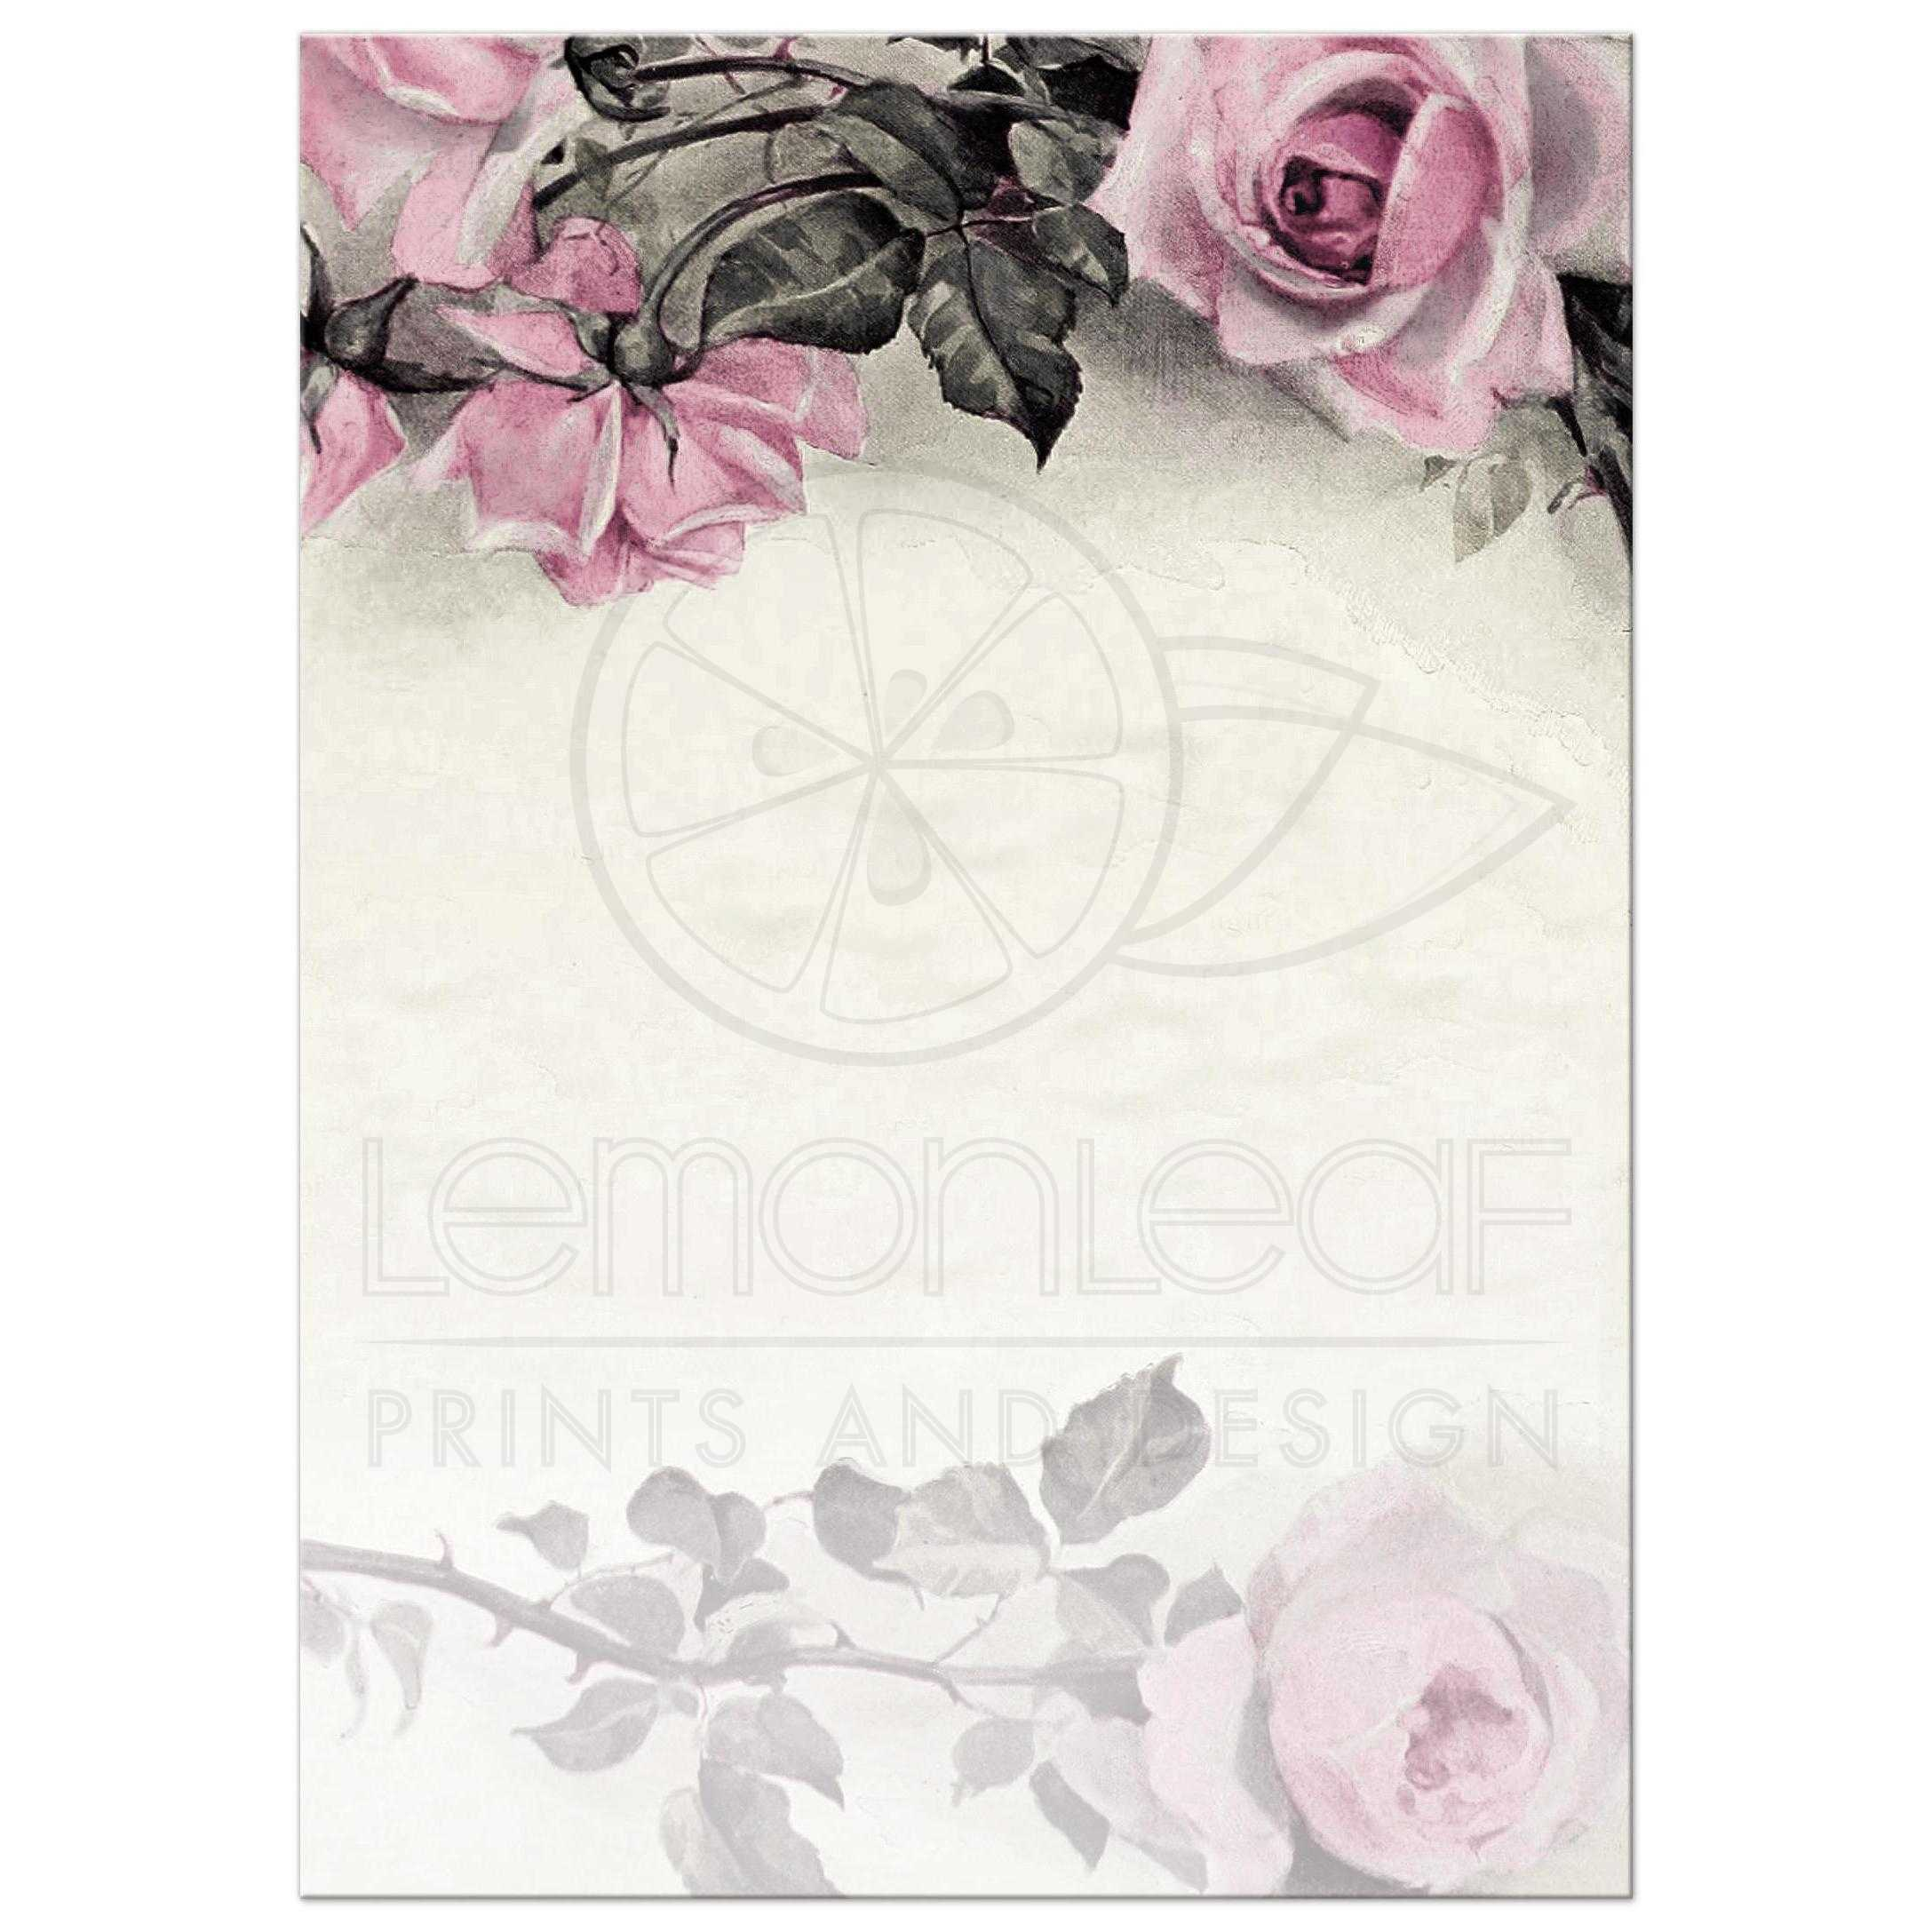 80th birthday thank you card vintage pink grey rose vintage pink grey gray and ivory rose 80th birthday party thank mightylinksfo